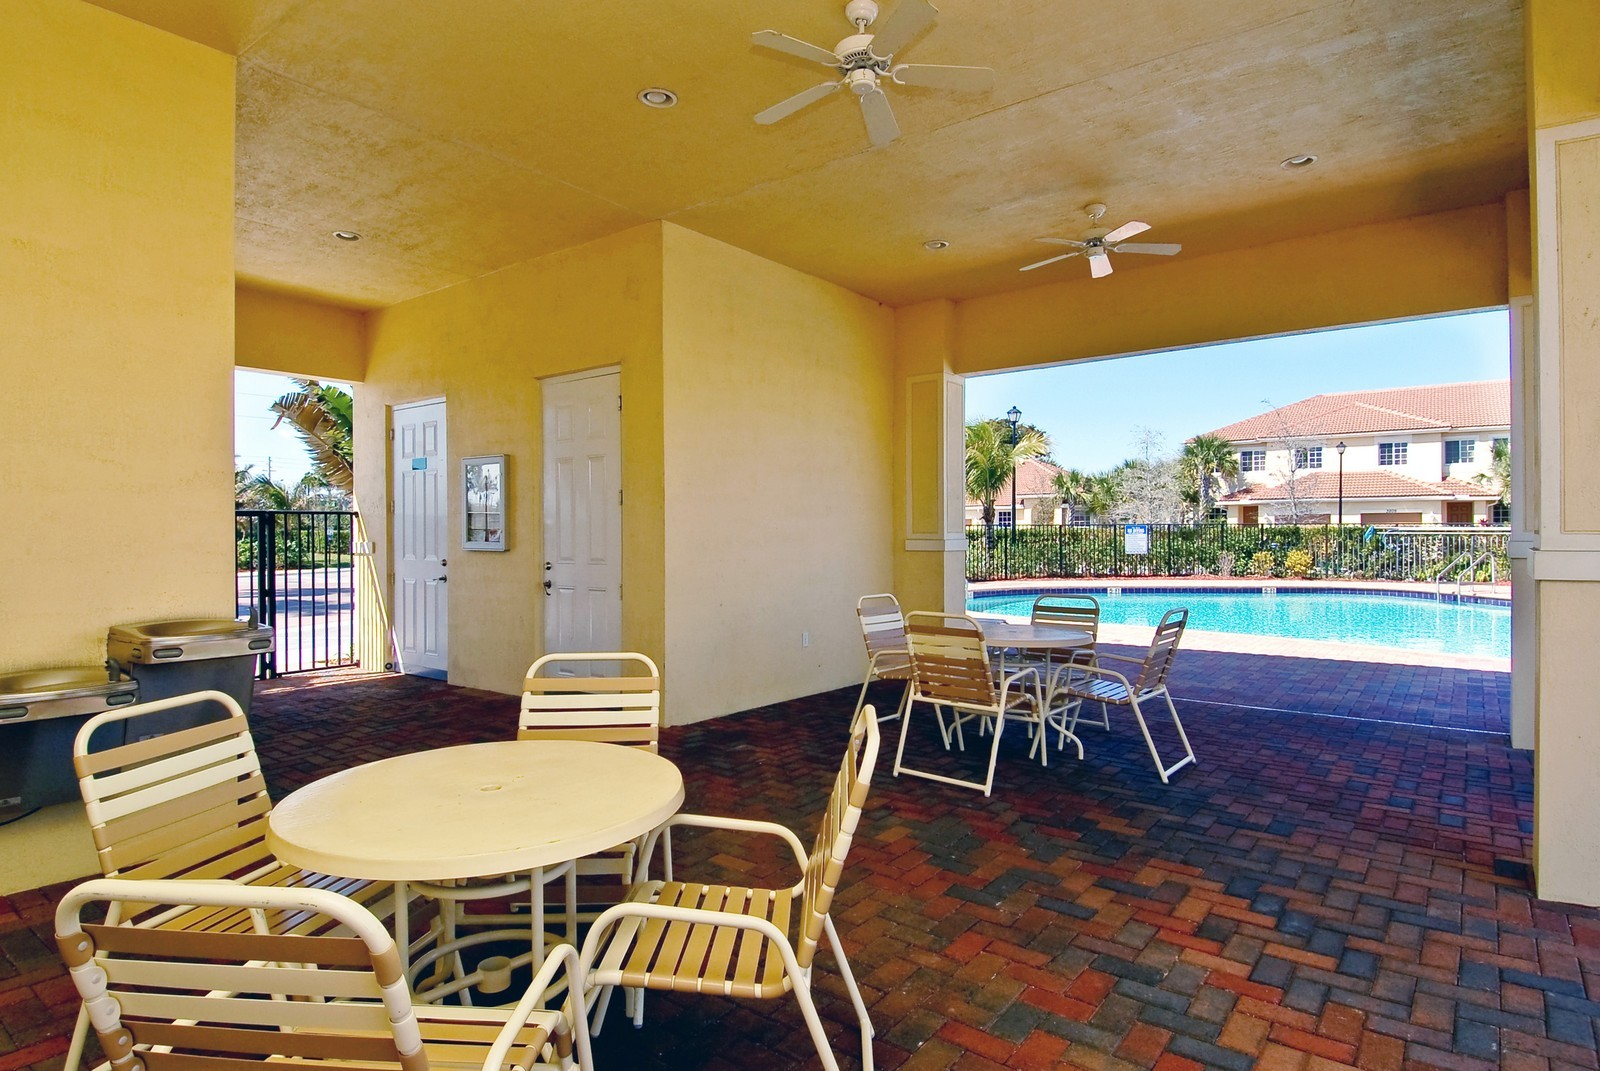 Real Estate Photography - 3169 NW 32nd St, Cayman Model, Oakland Park, FL, 33309 - Pool Terrace